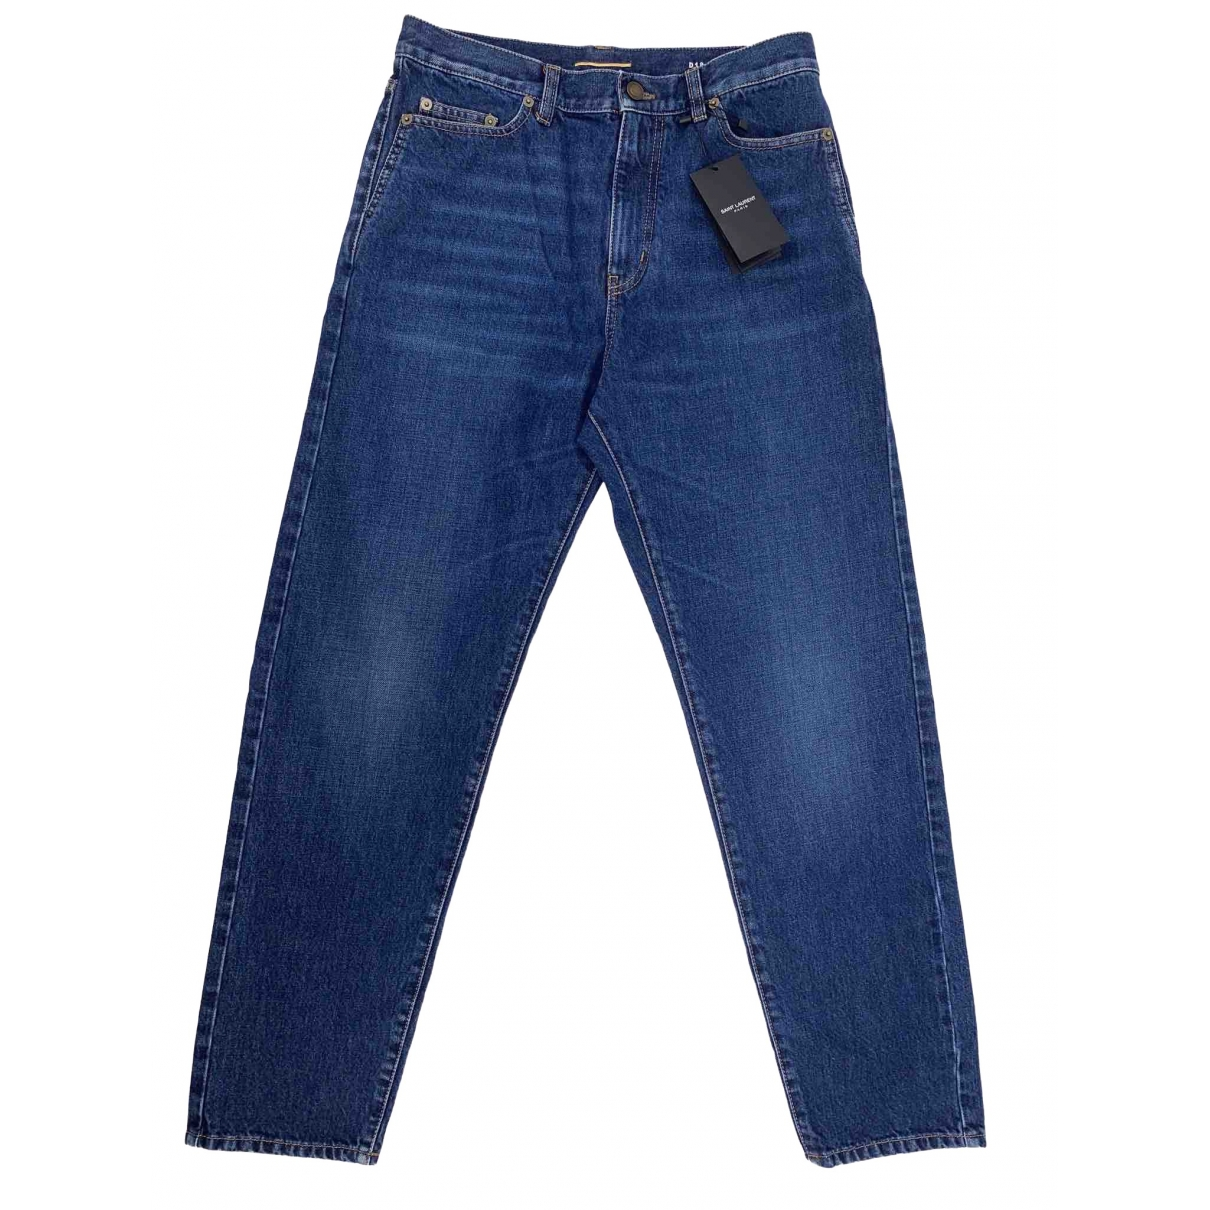 Saint Laurent \N Blue Denim - Jeans Jeans for Women 30 US